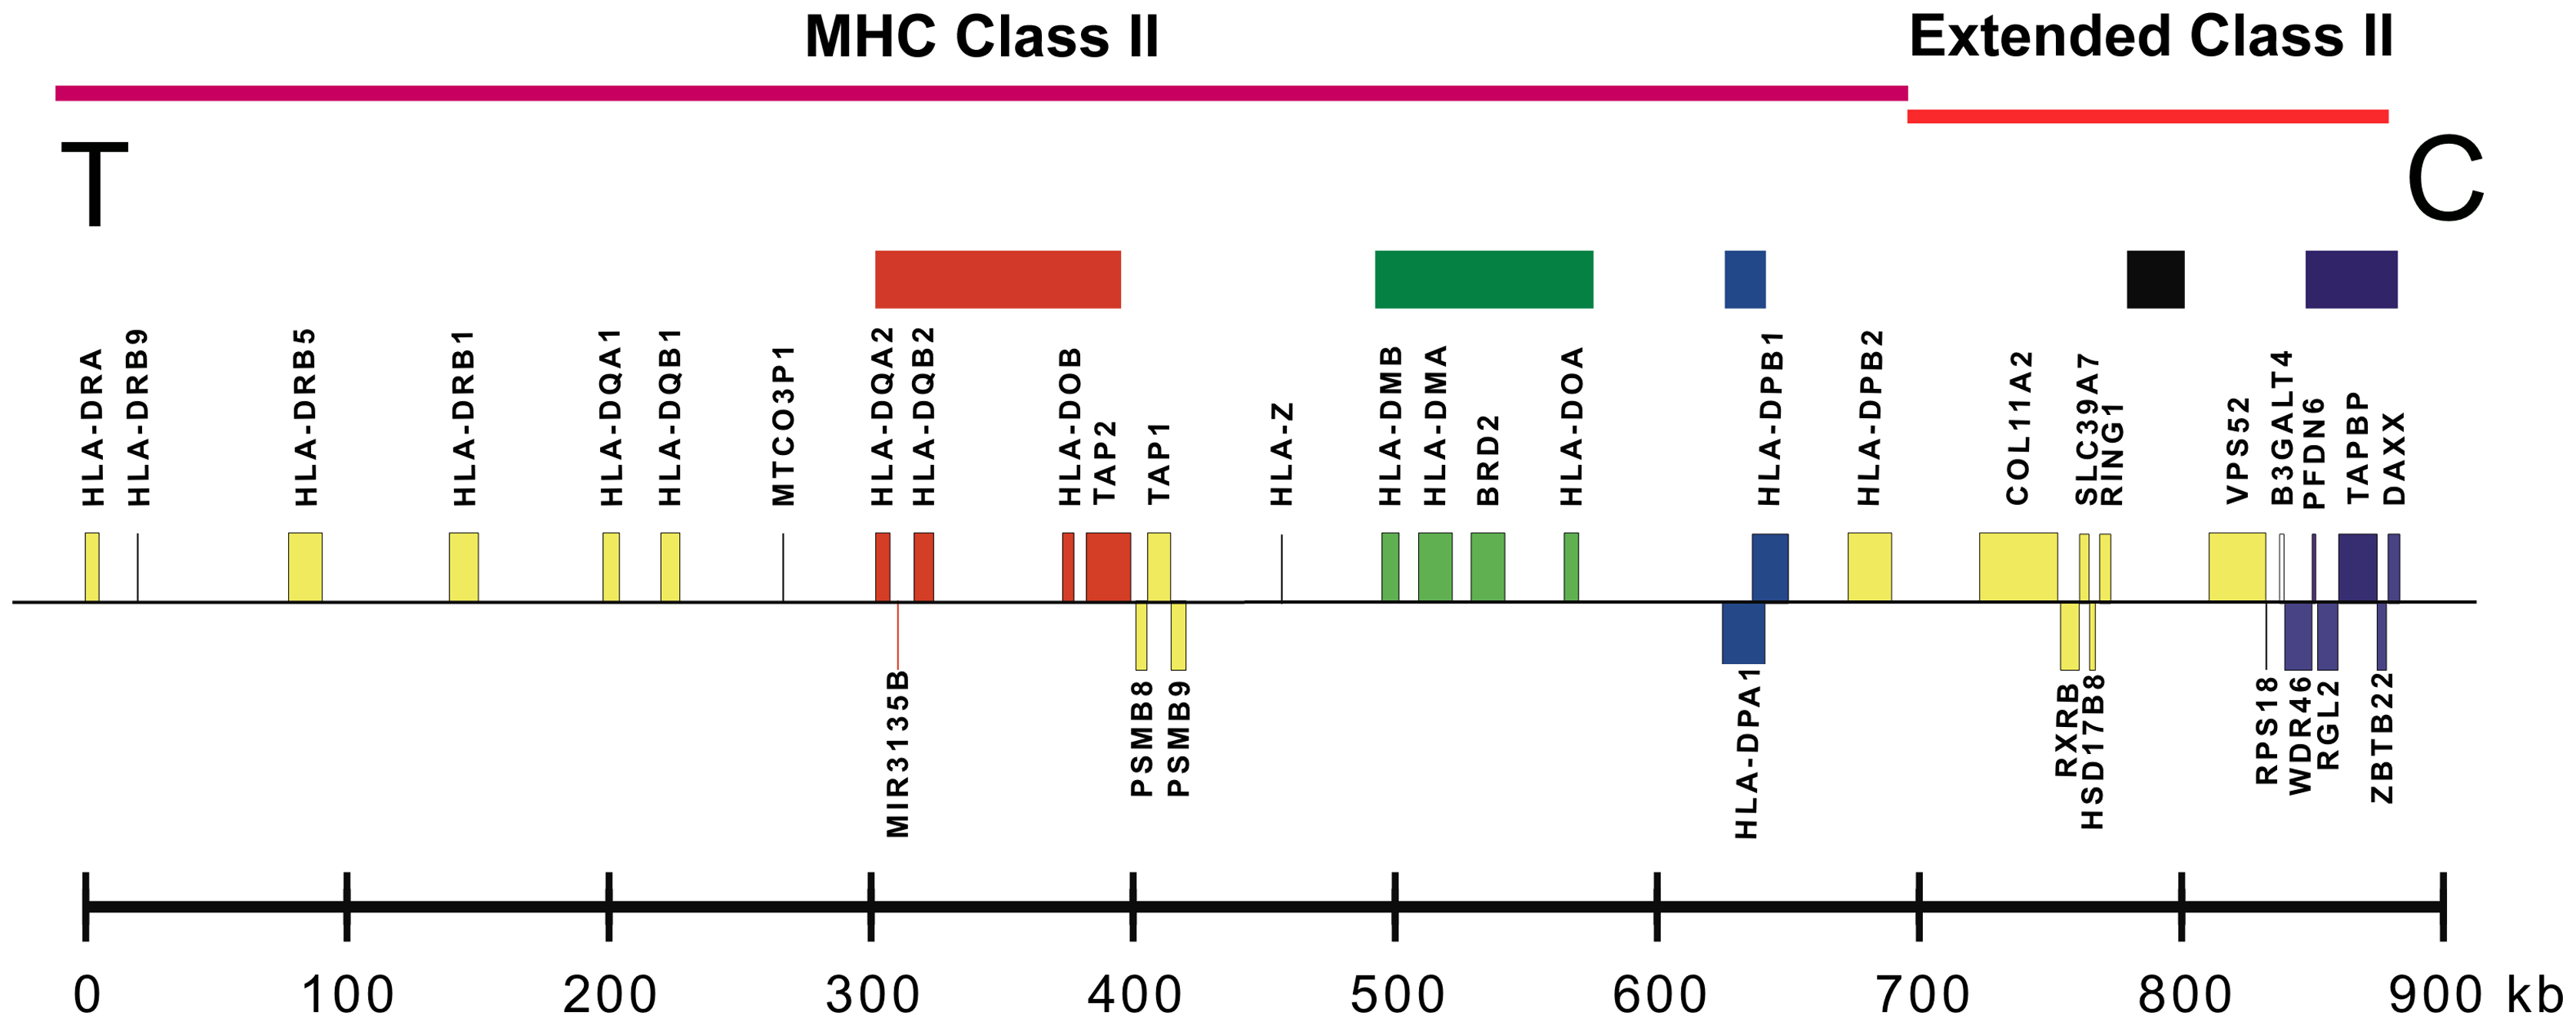 A map of the MHC class II and extended class II regions of chromosome 6p21.